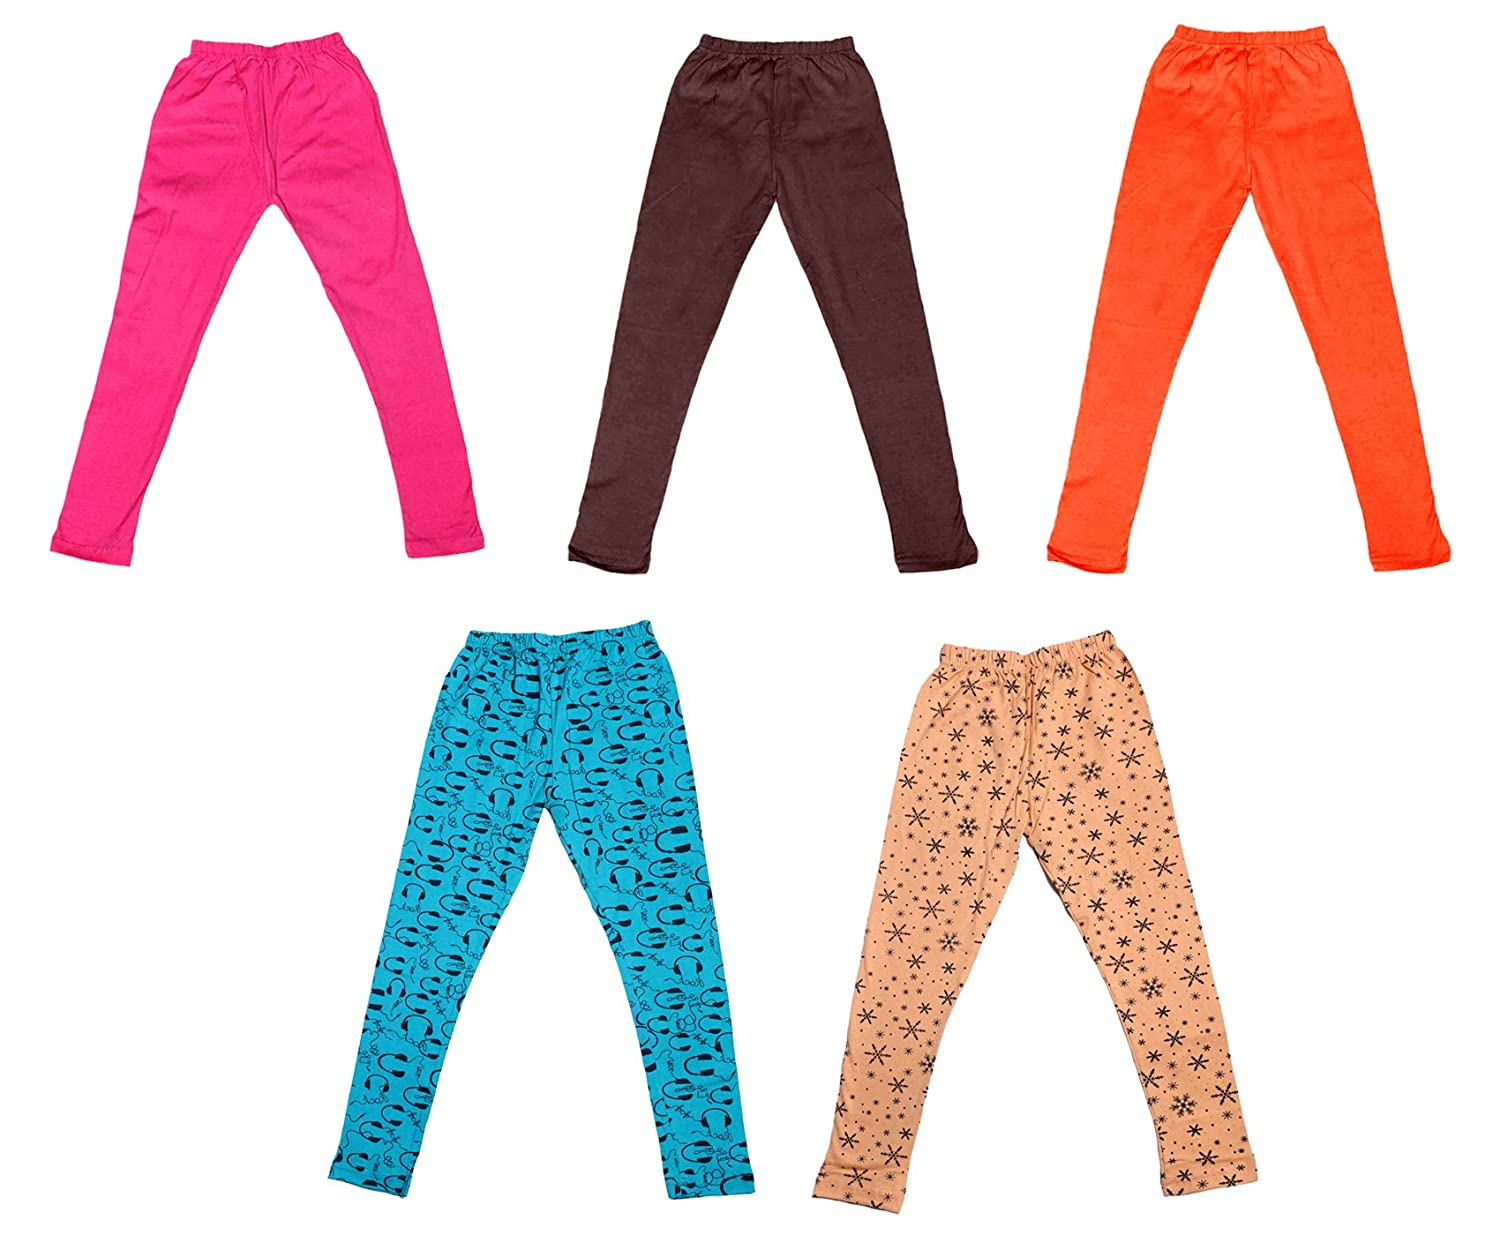 Pack Of 5 Indistar Girls 3 Cotton Solid Legging Pants and 2 Cotton Printed Legging Pants /_Multicolor/_Size-5-6 Years/_7141213141719-IW-P5-28